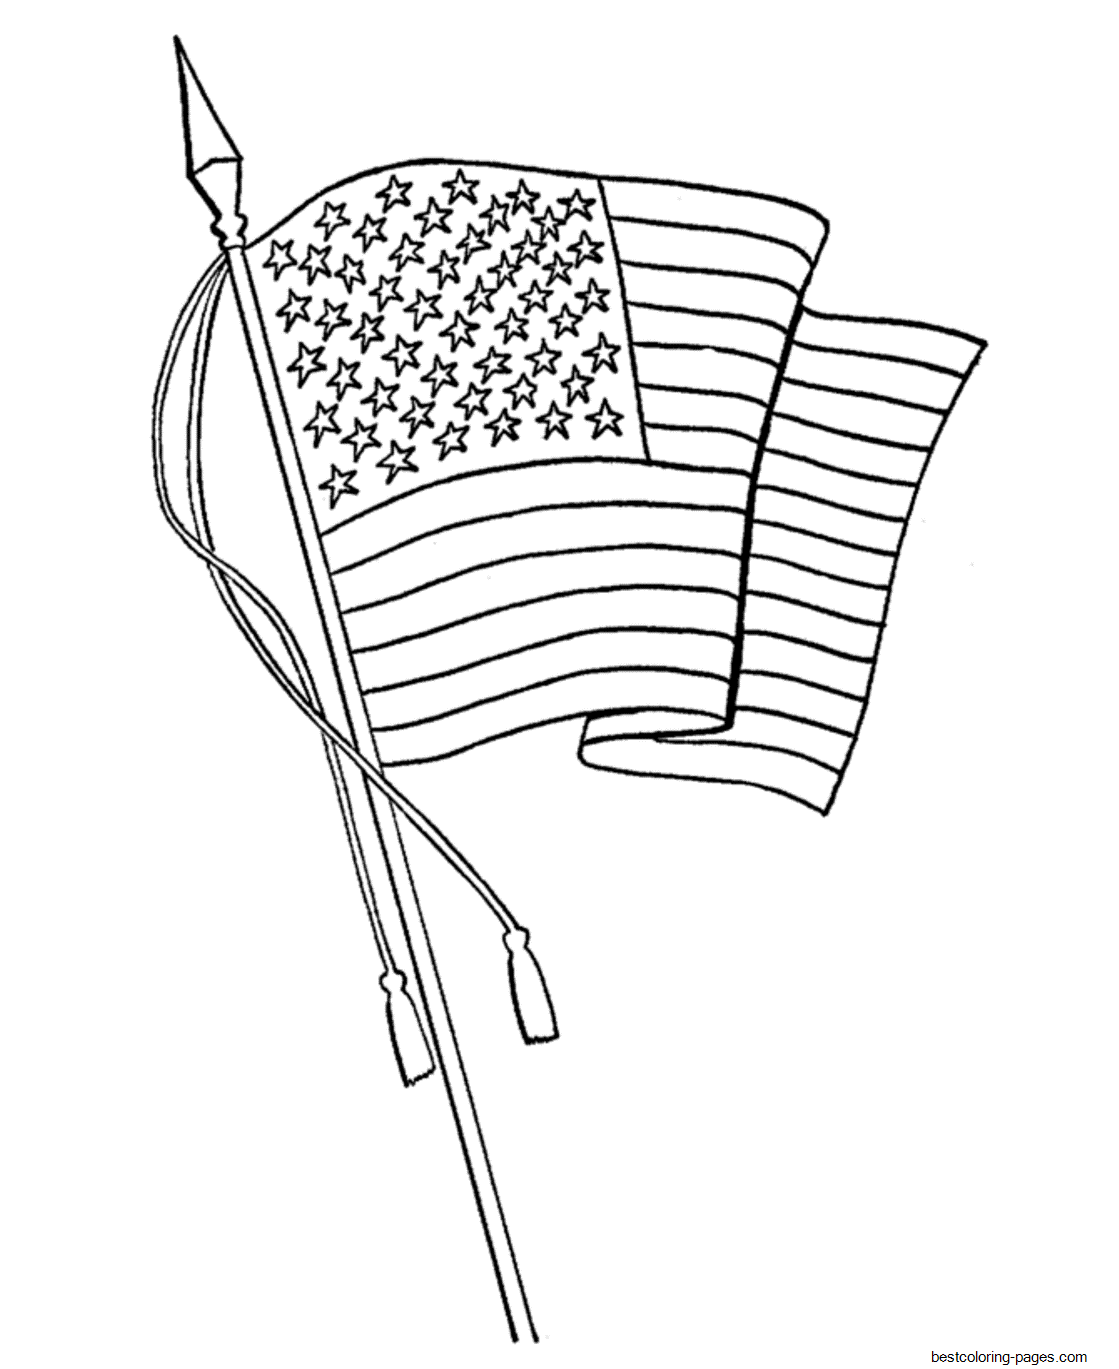 coloring sheet american flag coloring page 10 best images of flag worksheets for preschool flag american coloring flag coloring page sheet